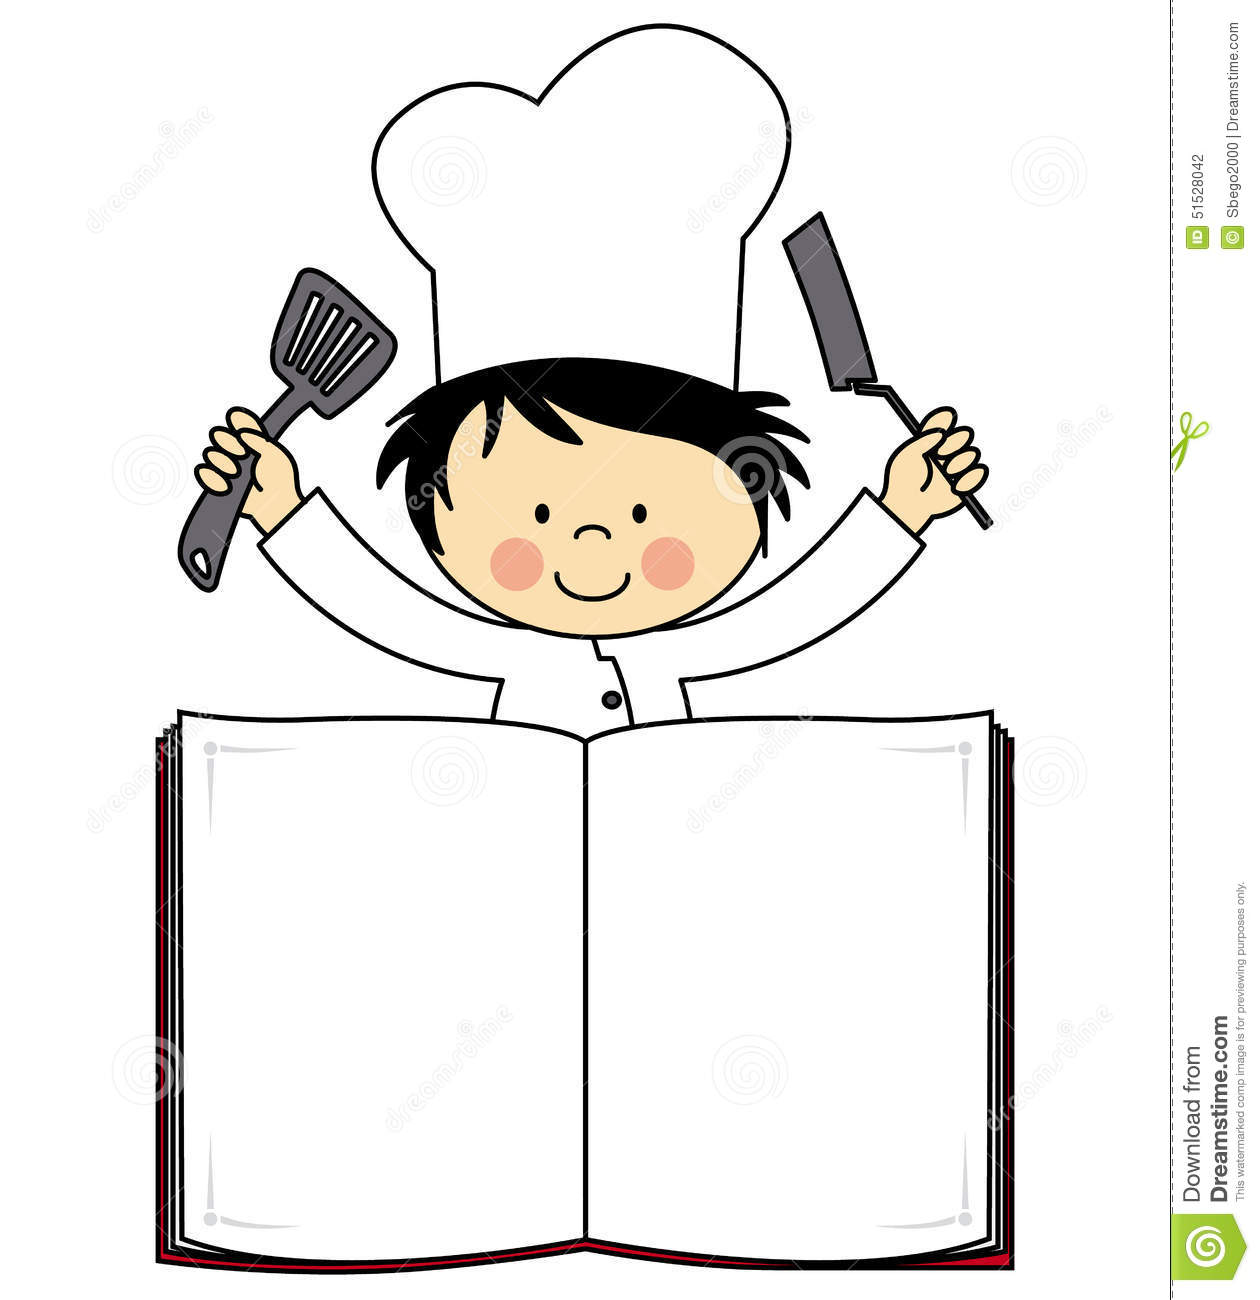 Little chef clipart vector library download Little chef clipart - ClipartFest vector library download